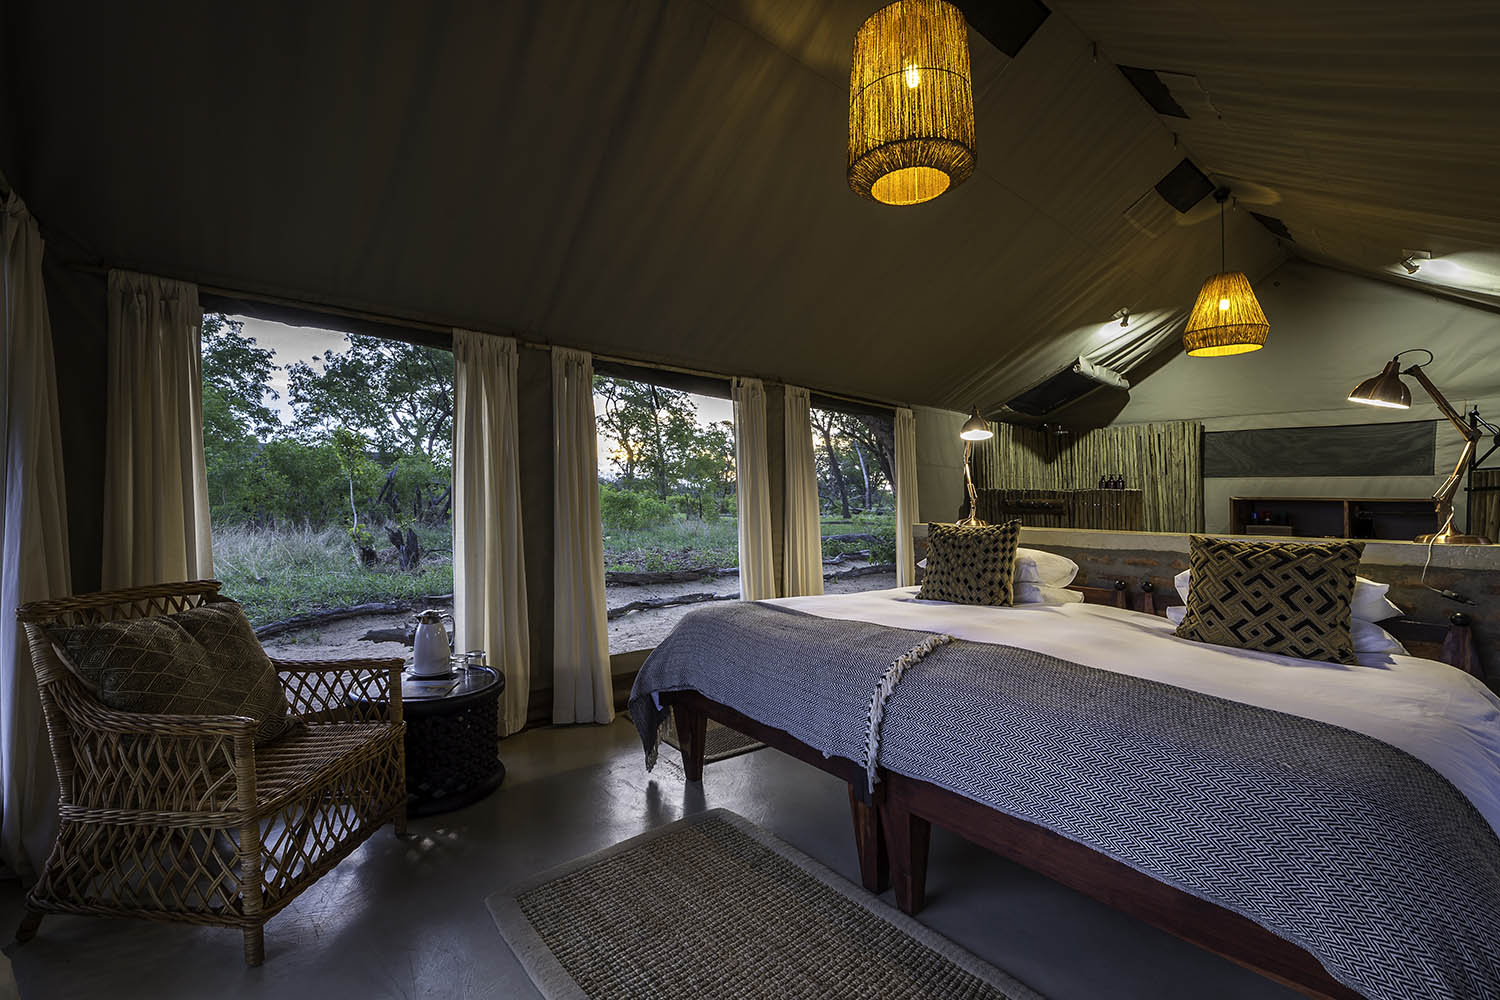 davisons camp hwange-national-park-zimbabwe-lodges-wilderness-safaris-bedroom